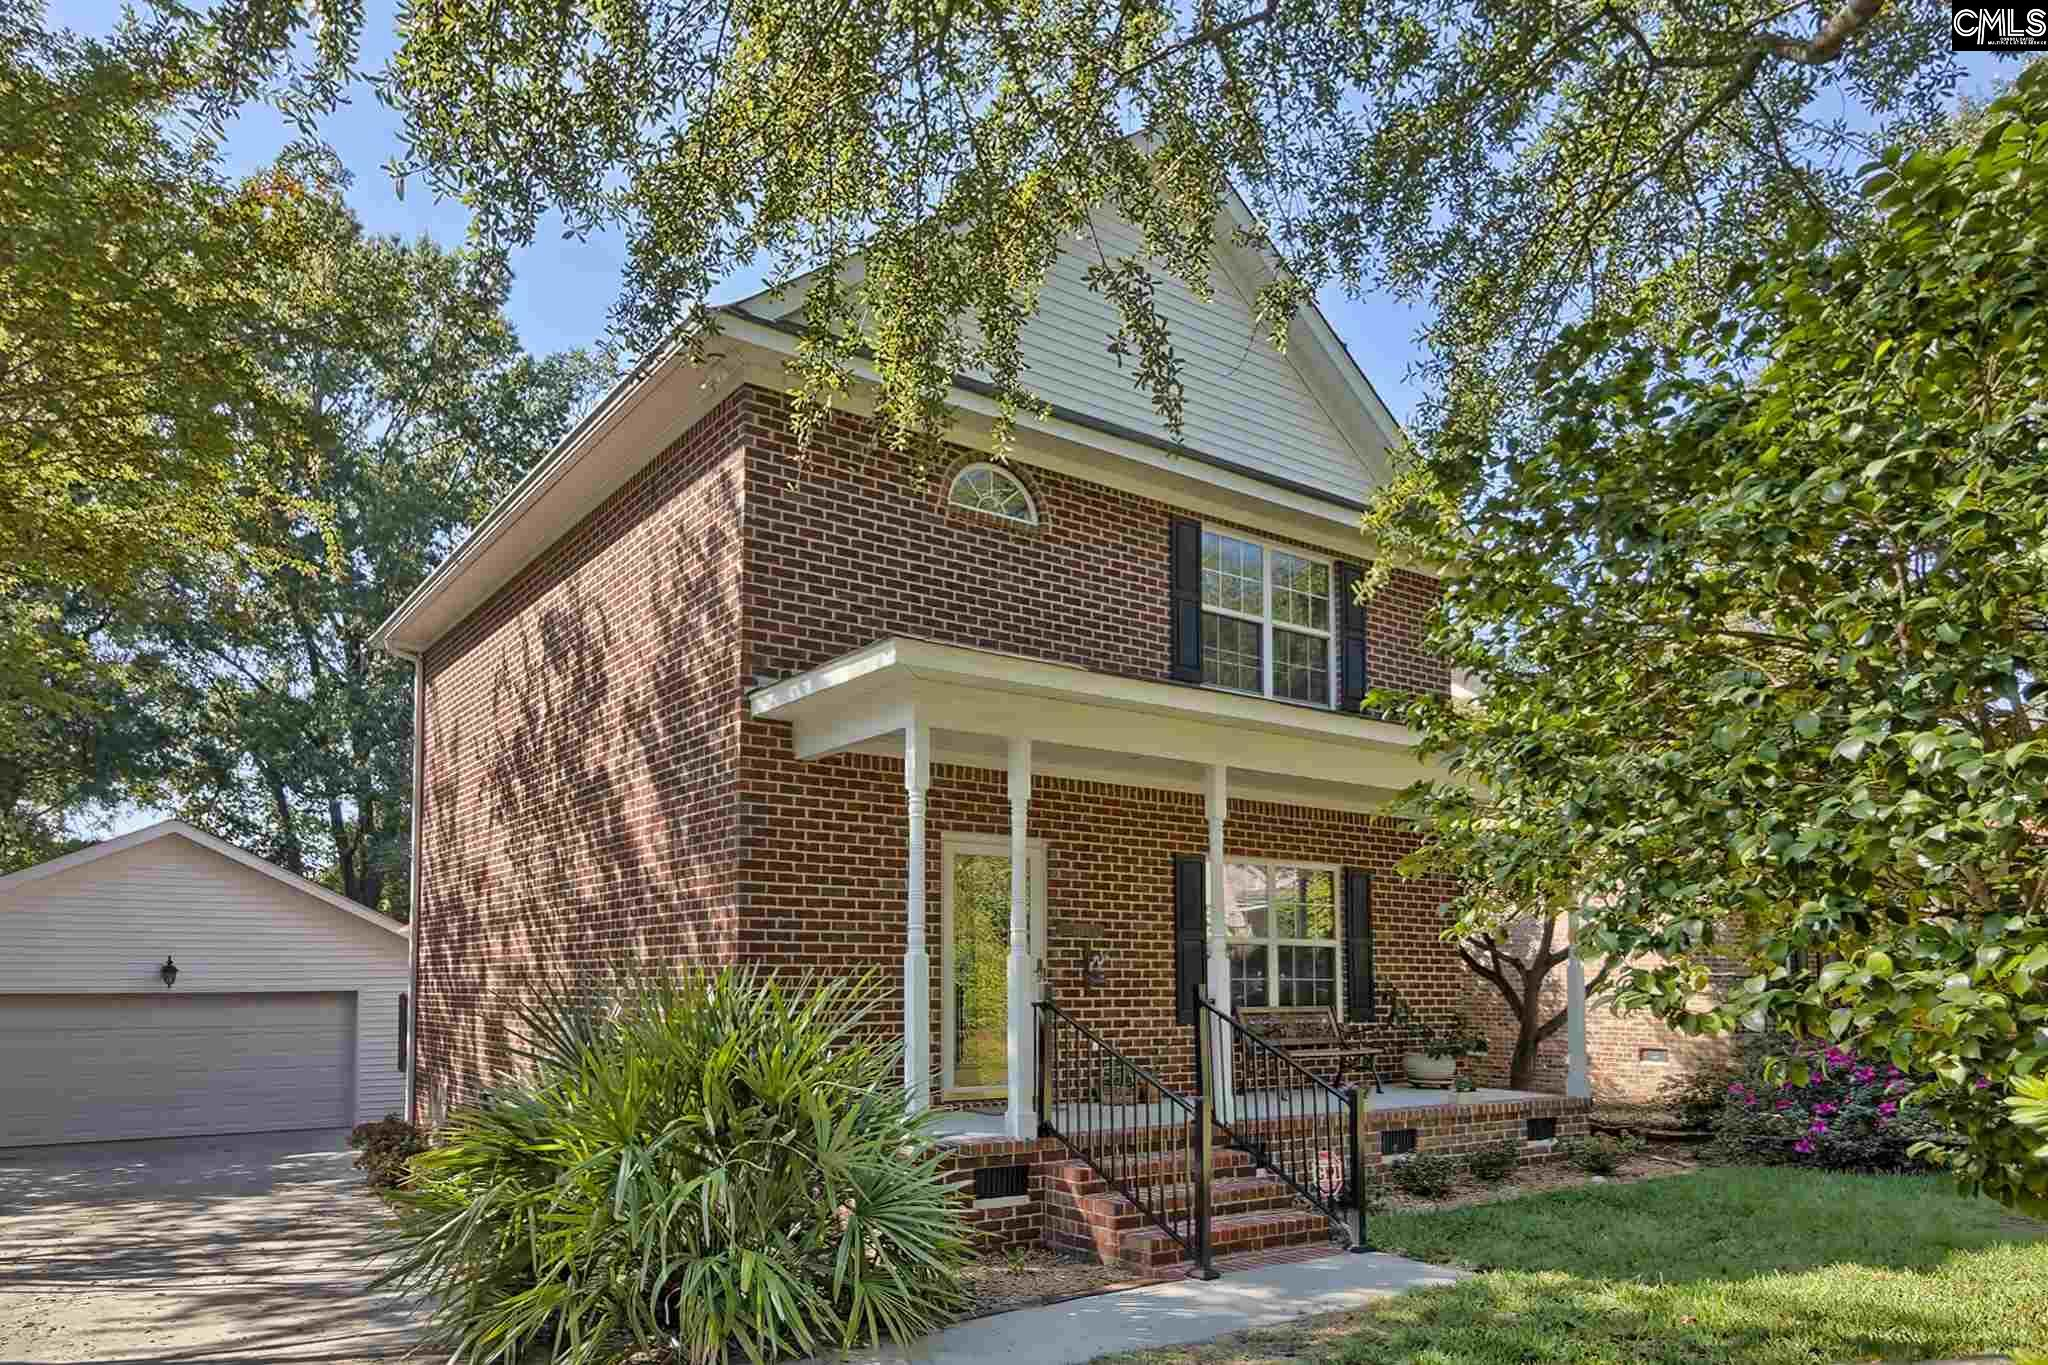 3712 Heyward Columbia, SC 29205